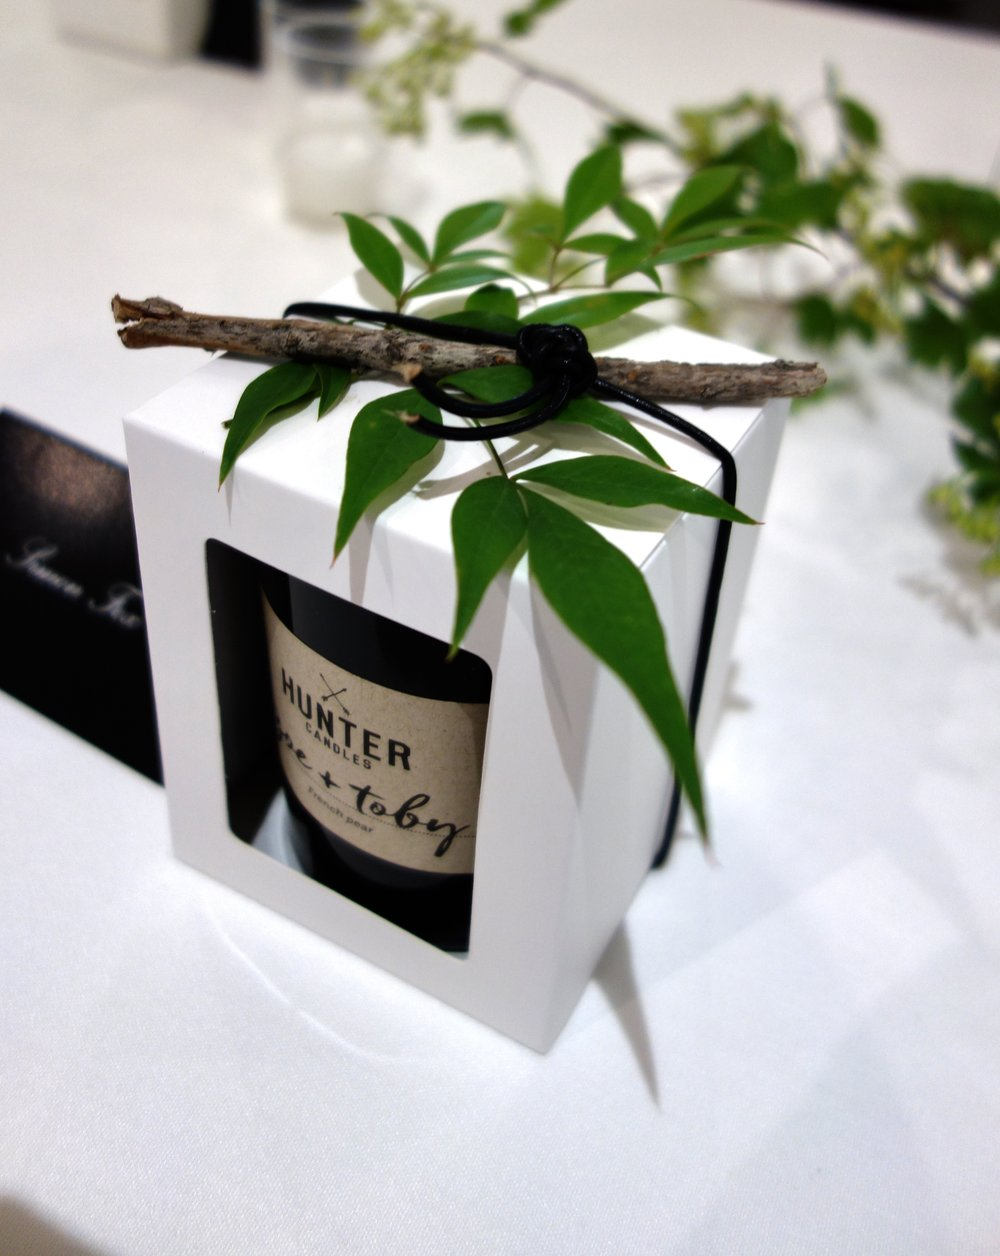 Bespoke Hunter Candles packaging with leaves and twig